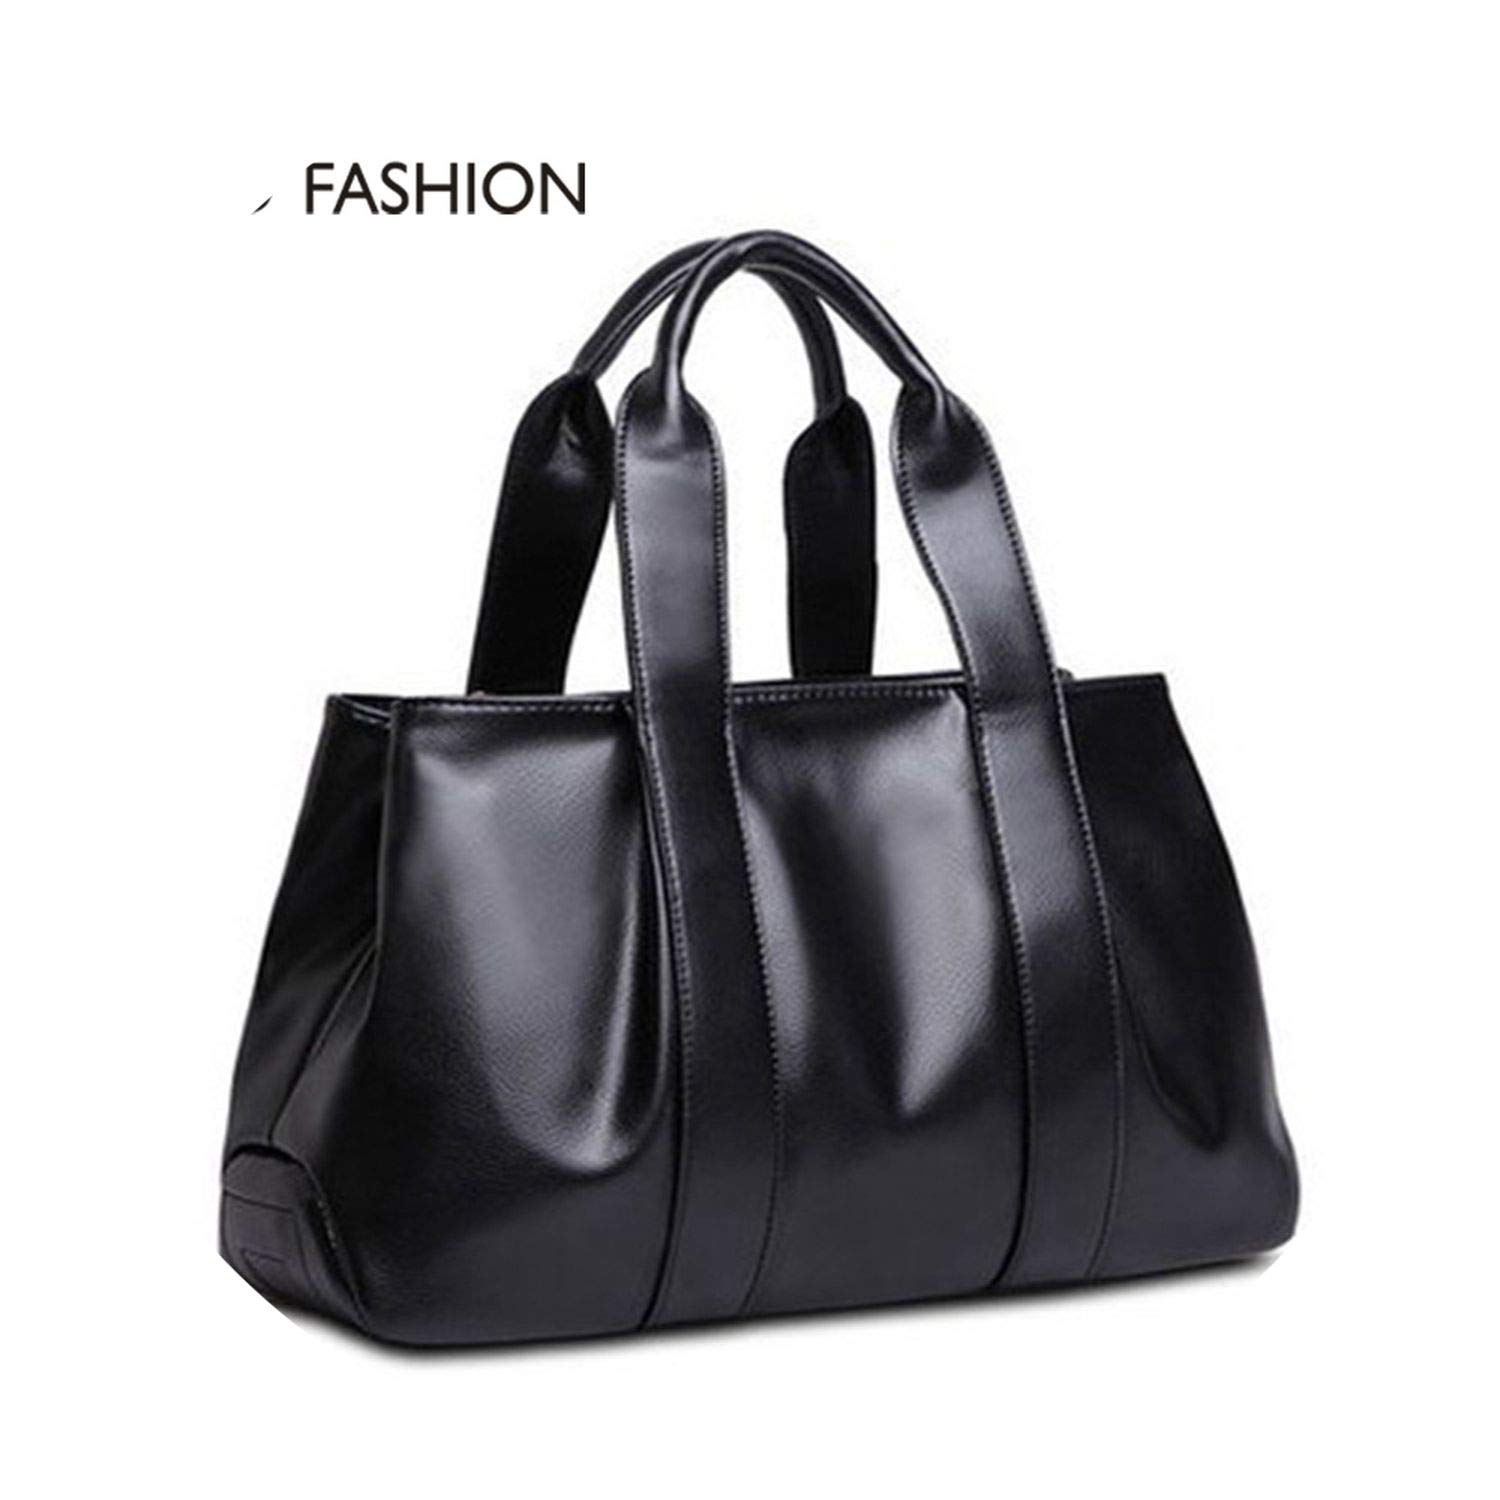 PU LeatherCasual Women Shoulder Bag Design Hobos Tote Bags for Women